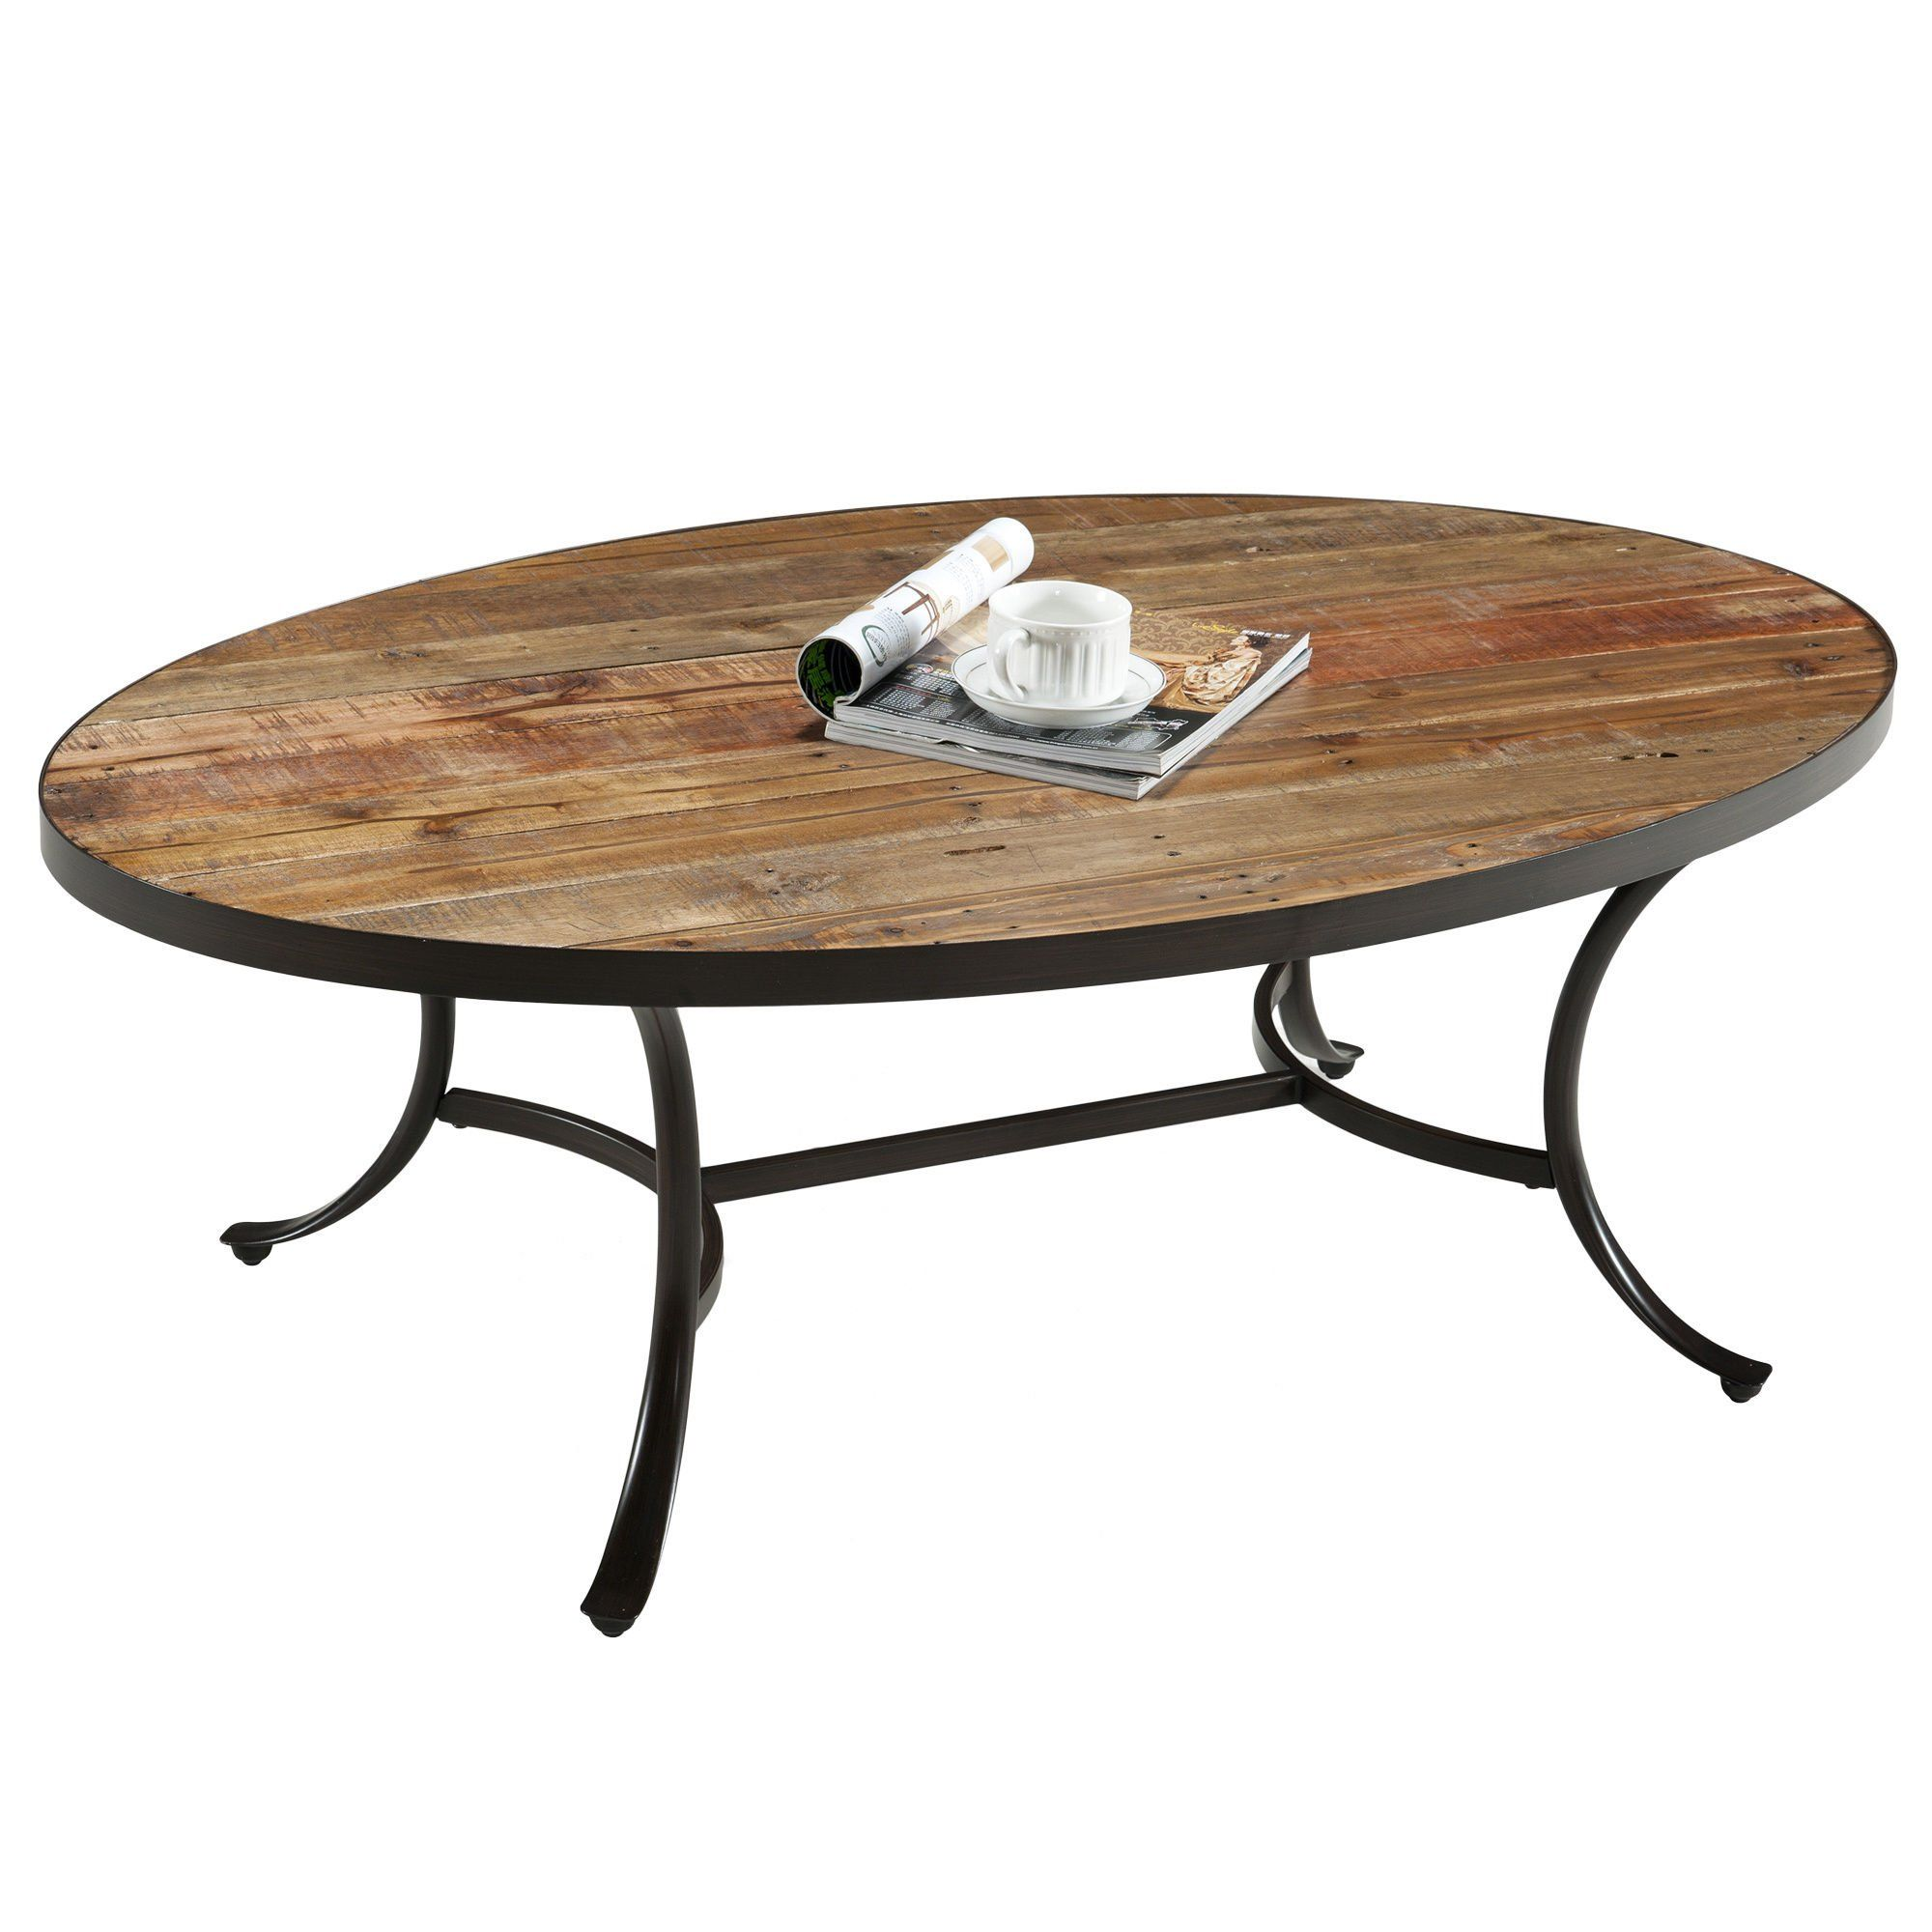 Modhaus Living Country Style Reclaimed Wood Top Oval Shaped Cocktail Coffee Table Metal Reclaimed Wood Cocktail Table Coffee Table Wood Oval Wood Coffee Table [ 2000 x 2000 Pixel ]